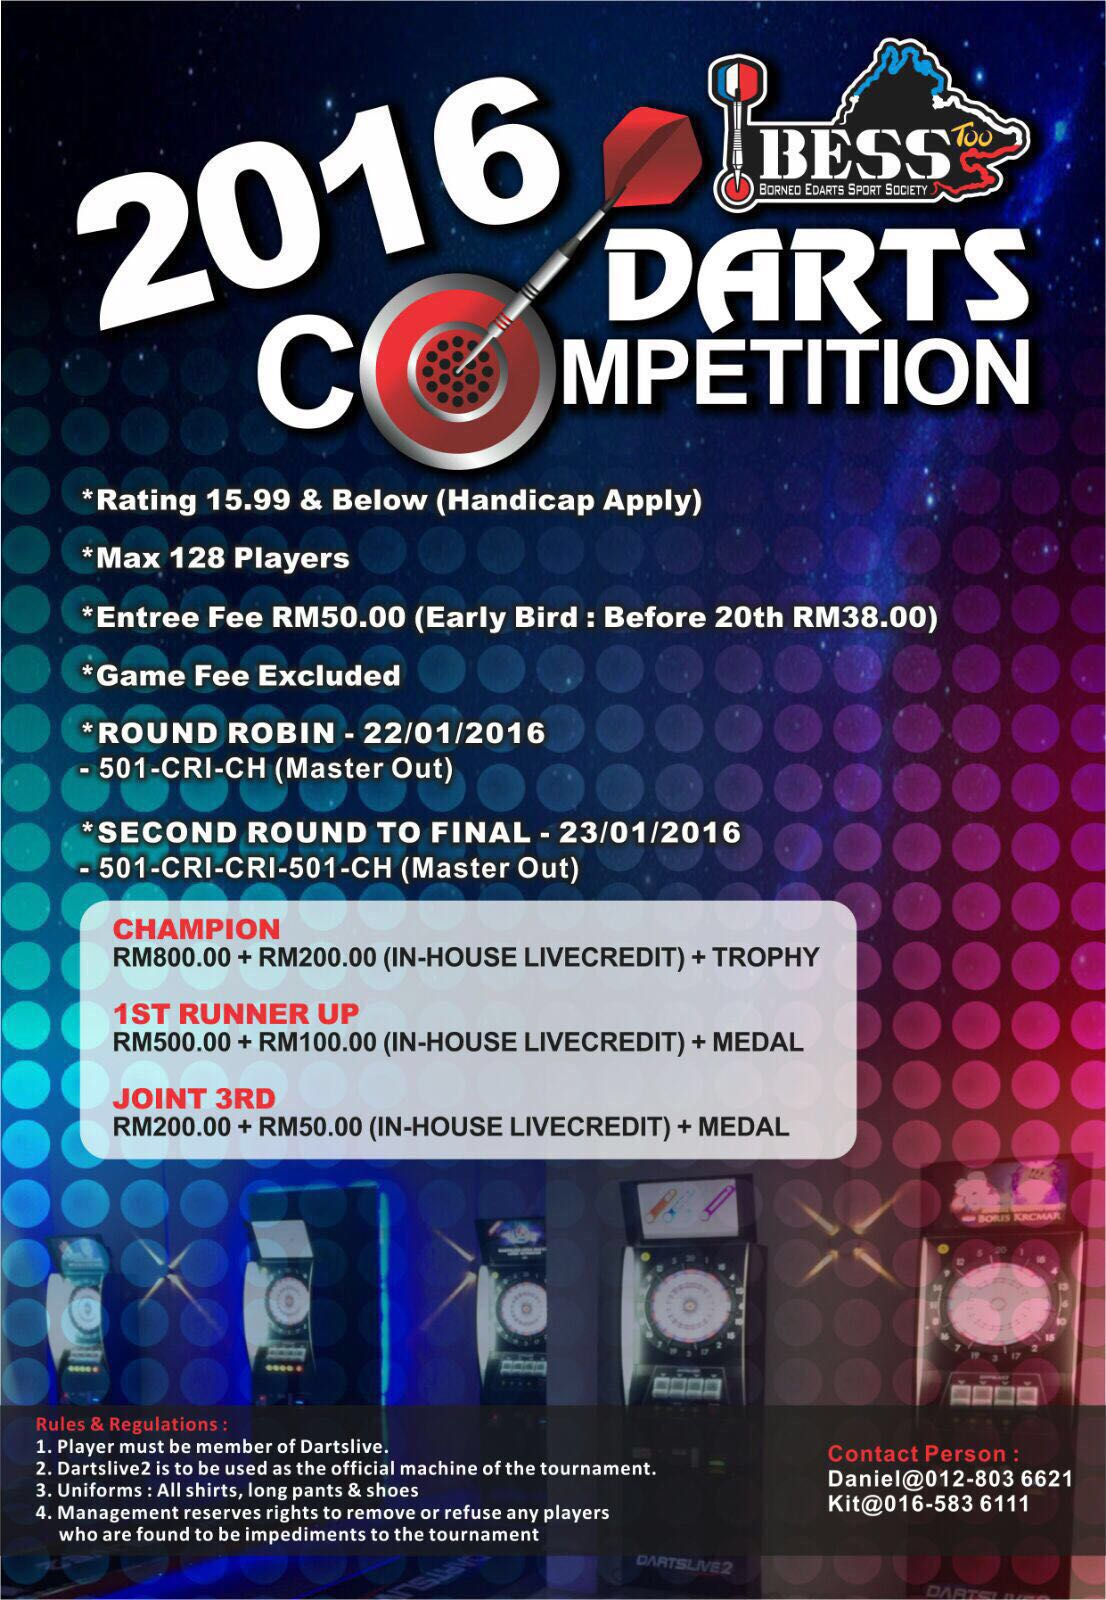 2016 BESS Too Darts Competition. 22nd - 23rd January, 2016. Taipan Inanam.